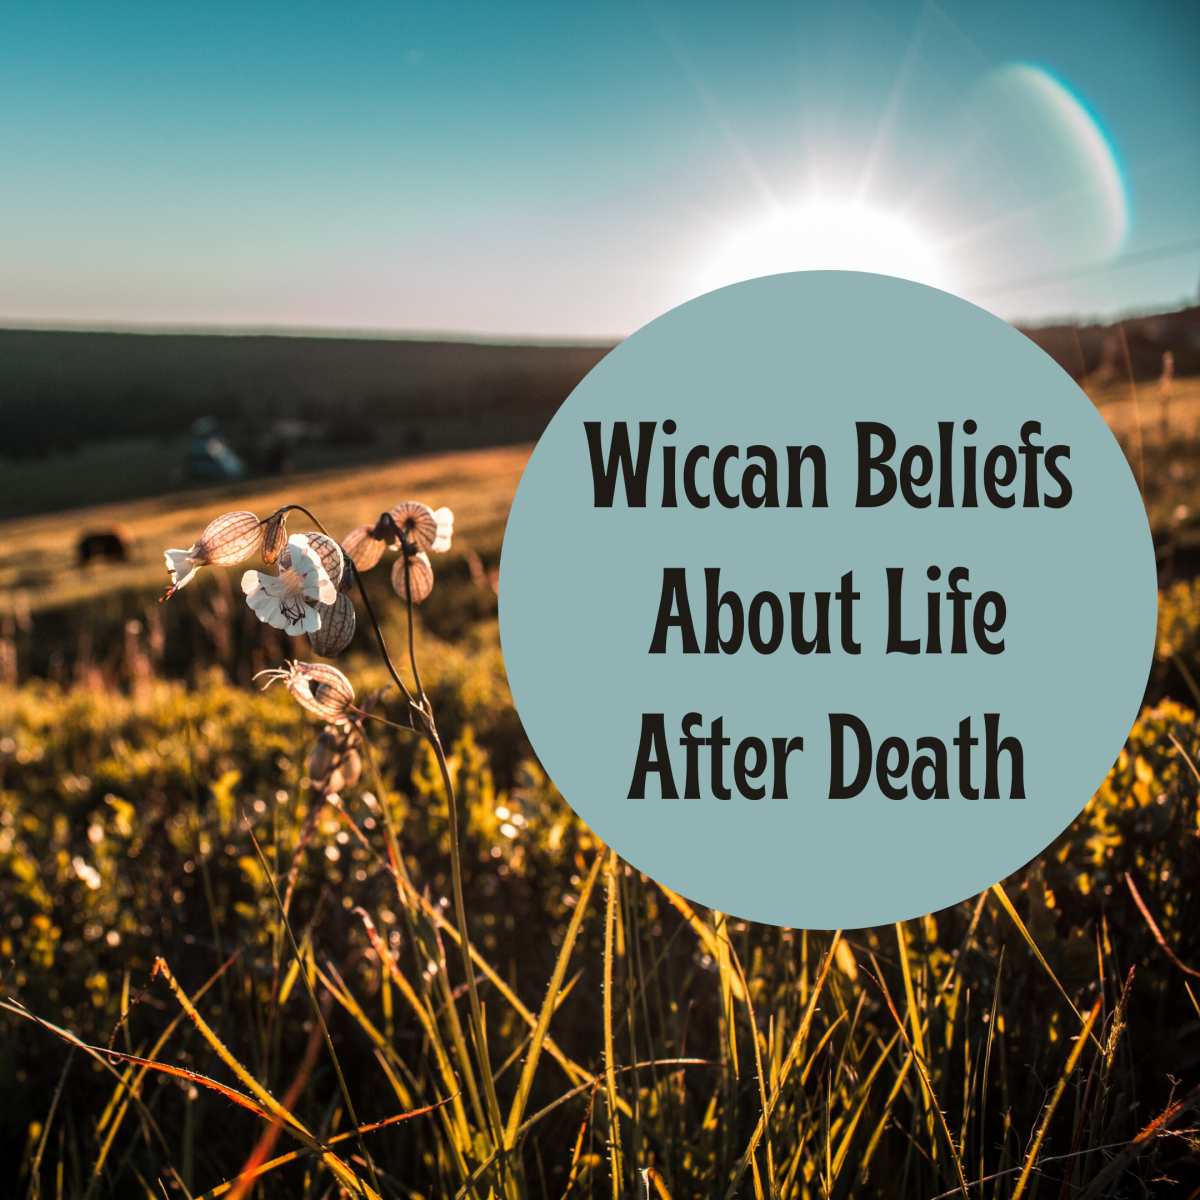 Explore some views on life after death in the Wicca religion.